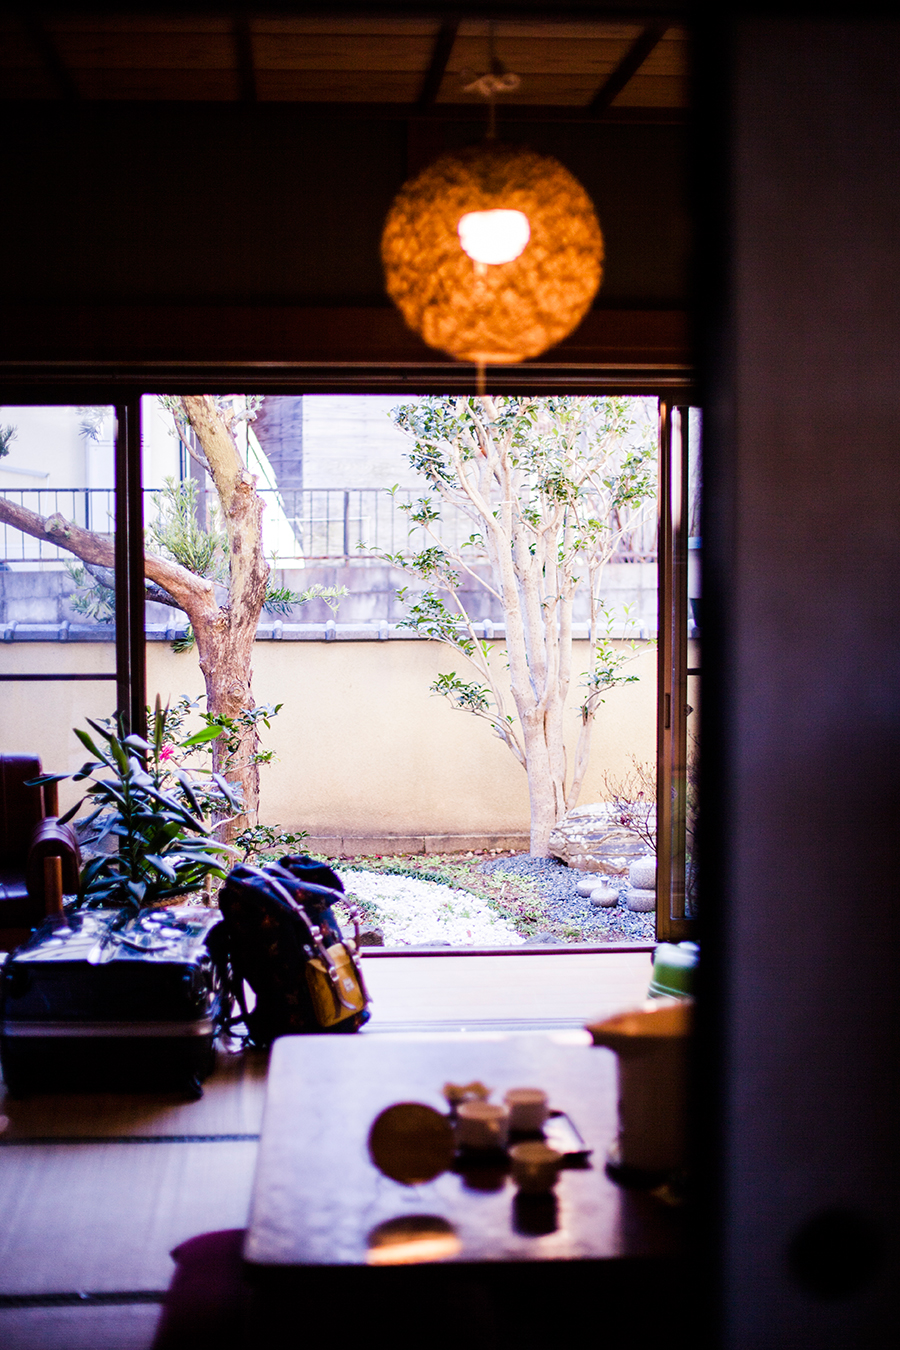 Small zen garden at our Kyoto Airbnb.